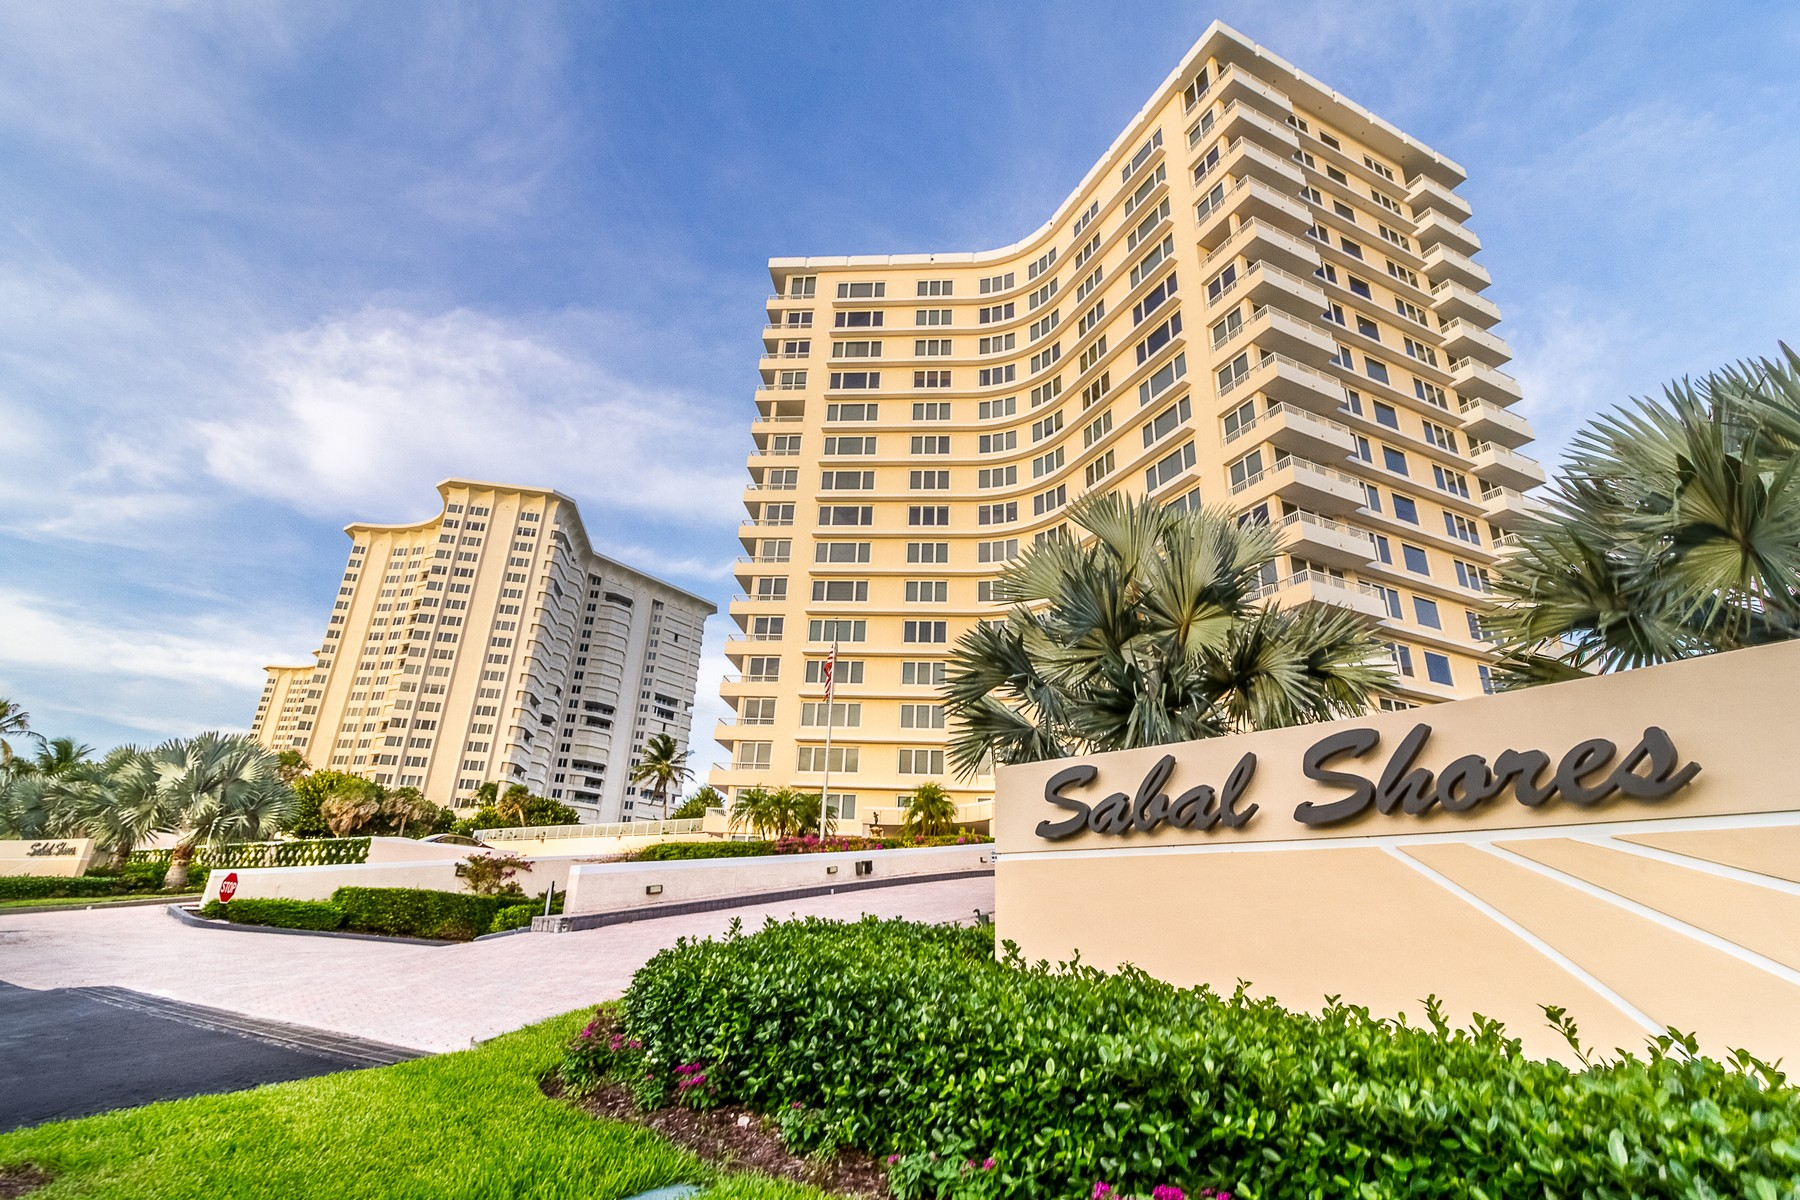 Condominium for Sale at 600 S Ocean Blvd , 9050, Boca Raton, FL 33432 600 S Ocean Blvd 9050 Boca Raton, Florida, 33432 United States